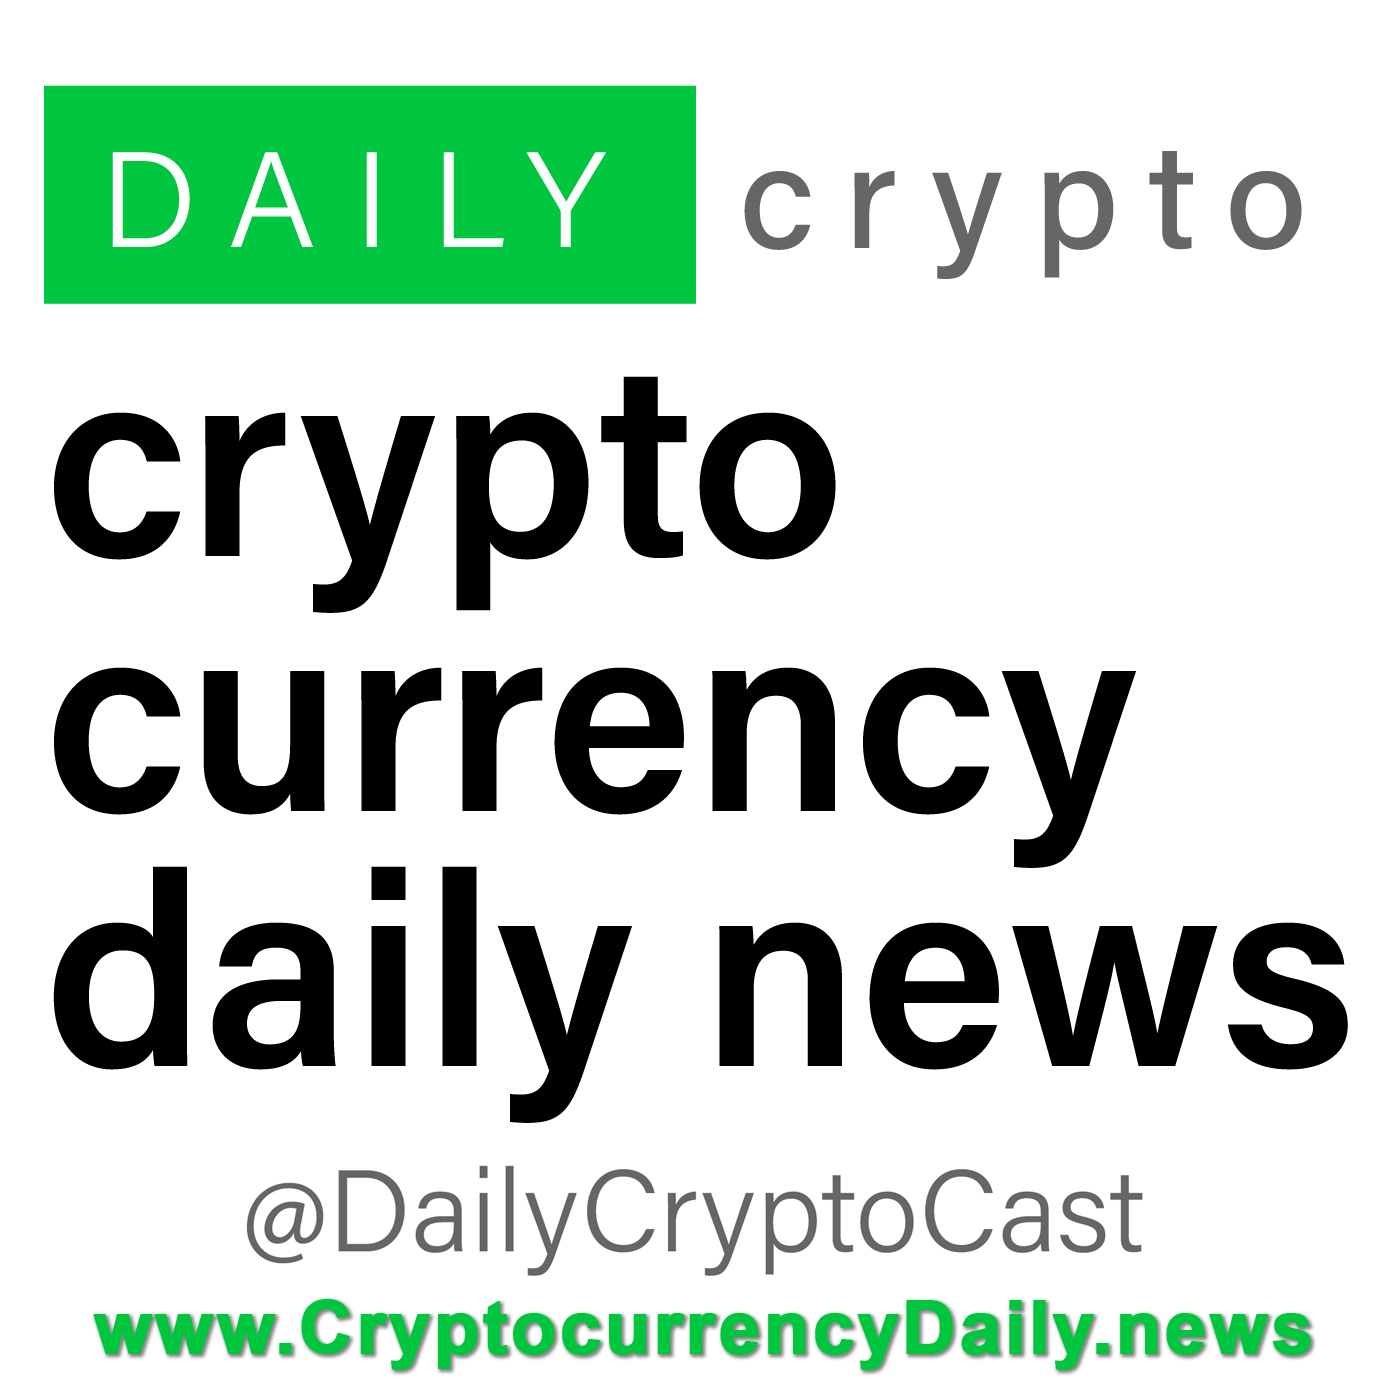 3/26/18 Crypto News - Ontology, Mithril, Ridrr